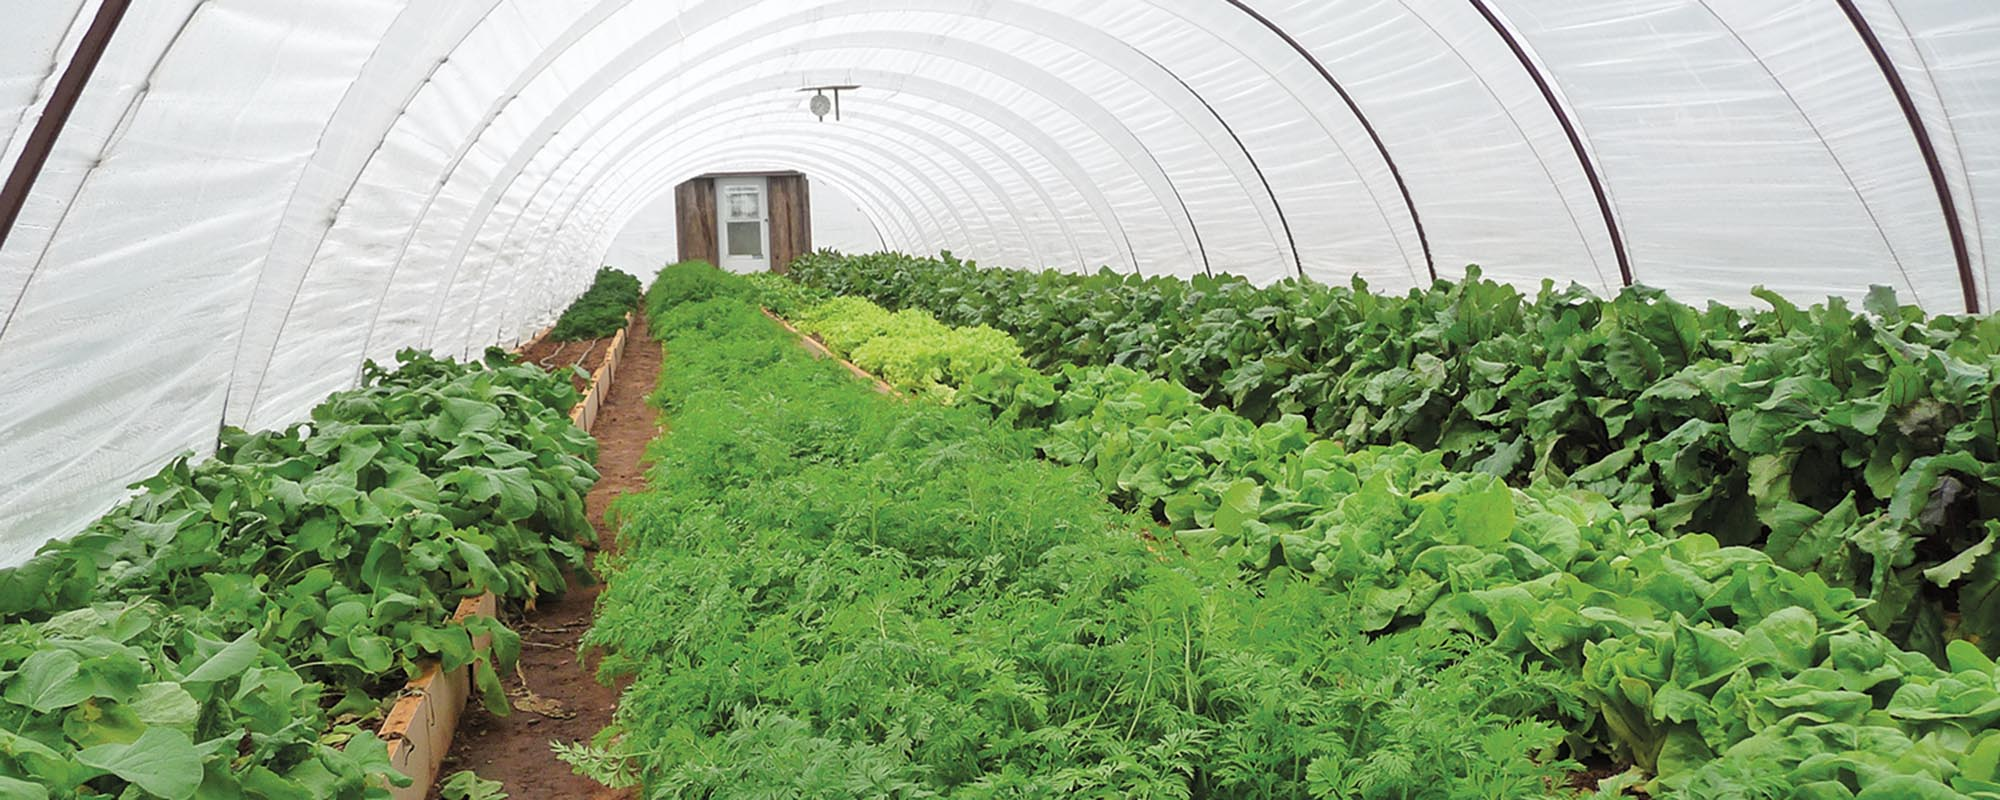 Citaten Hoop House : Hoop house horticulture creates many benefits